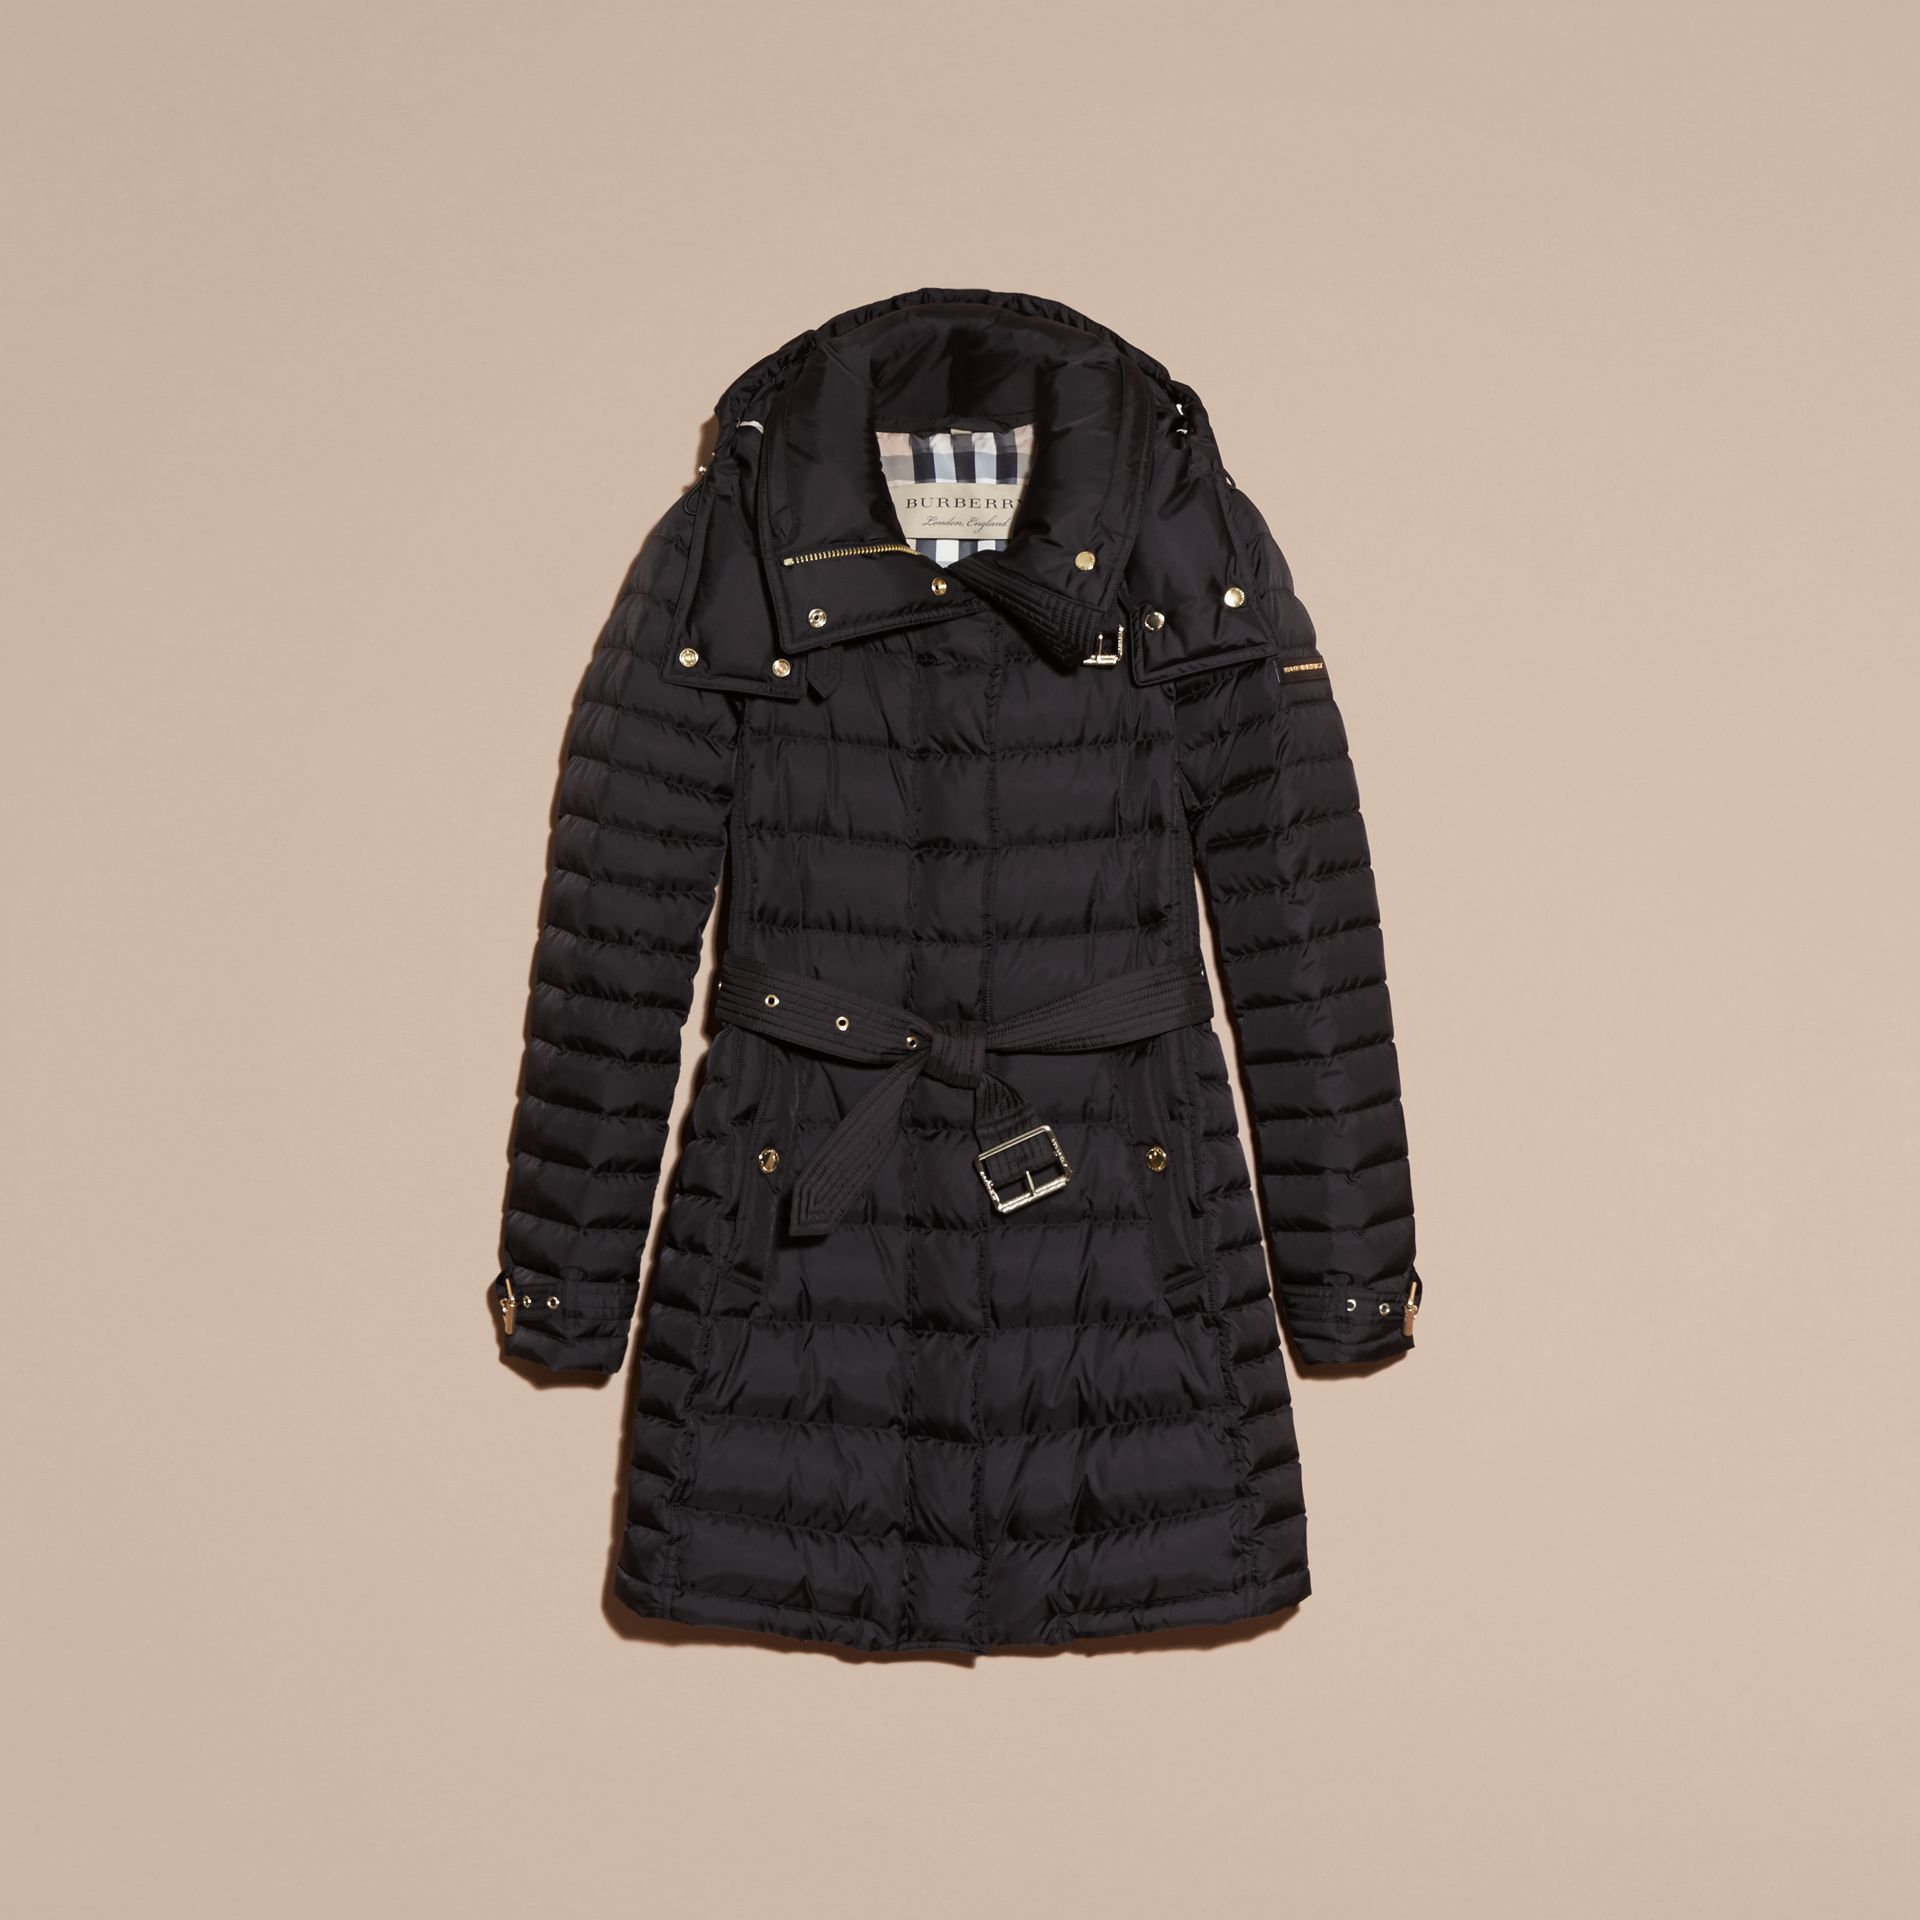 Down-filled Puffer Coat with Packaway Hood - Women | Burberry - gallery image 4